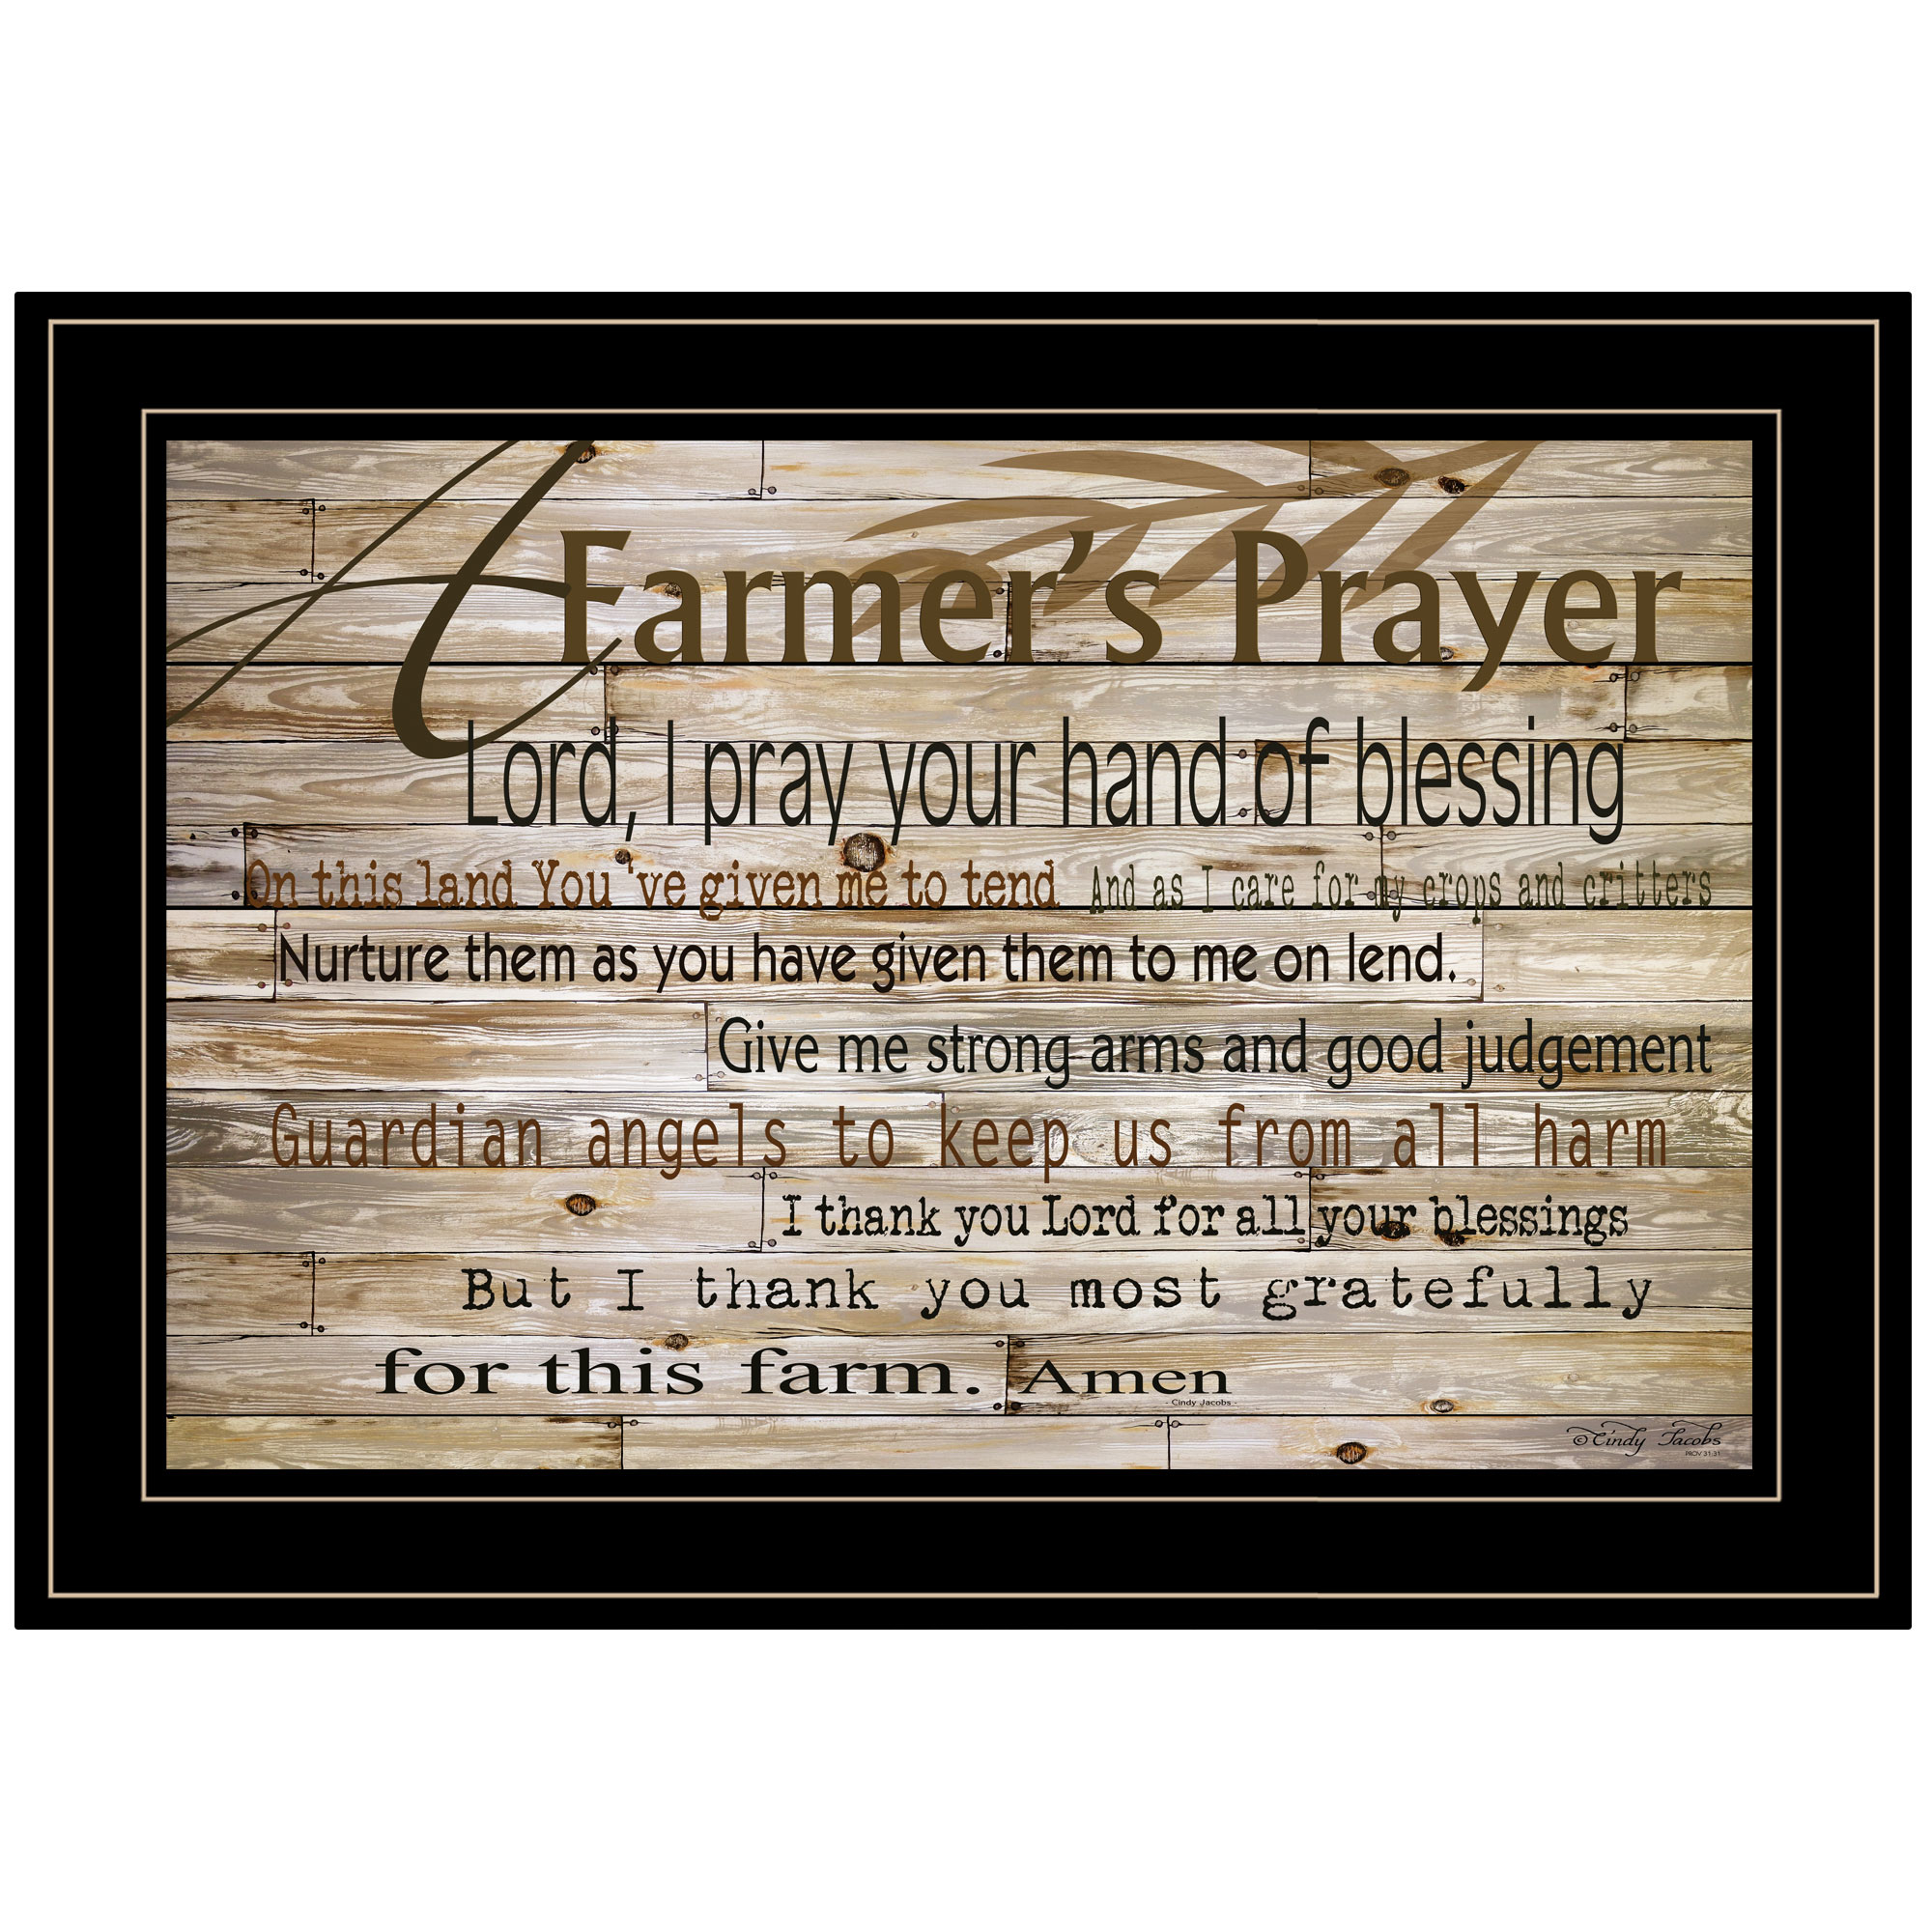 Cin122-704G A Farmer's Prayer, by artisan Cindy Jacobs. This decorative black framed print (21x15) is a prayer that farmer's would pray for the blessing of they land. Print is textured no need for glass, and arrives ready to hang. * Textured Artwork with a 'rolled on' acid-free acrylic coating to create a canvas painting effect. * UV Protectant Coating protects artwork from fading. No glass is necessary. * Moulding adds natural beauty to the framed art. Frame is keyholed for the easy hanging. * This Fine Home Decor piece made in the USA by Woman Owned Business (Wbe) is a perfect gift for a friend or relative. *